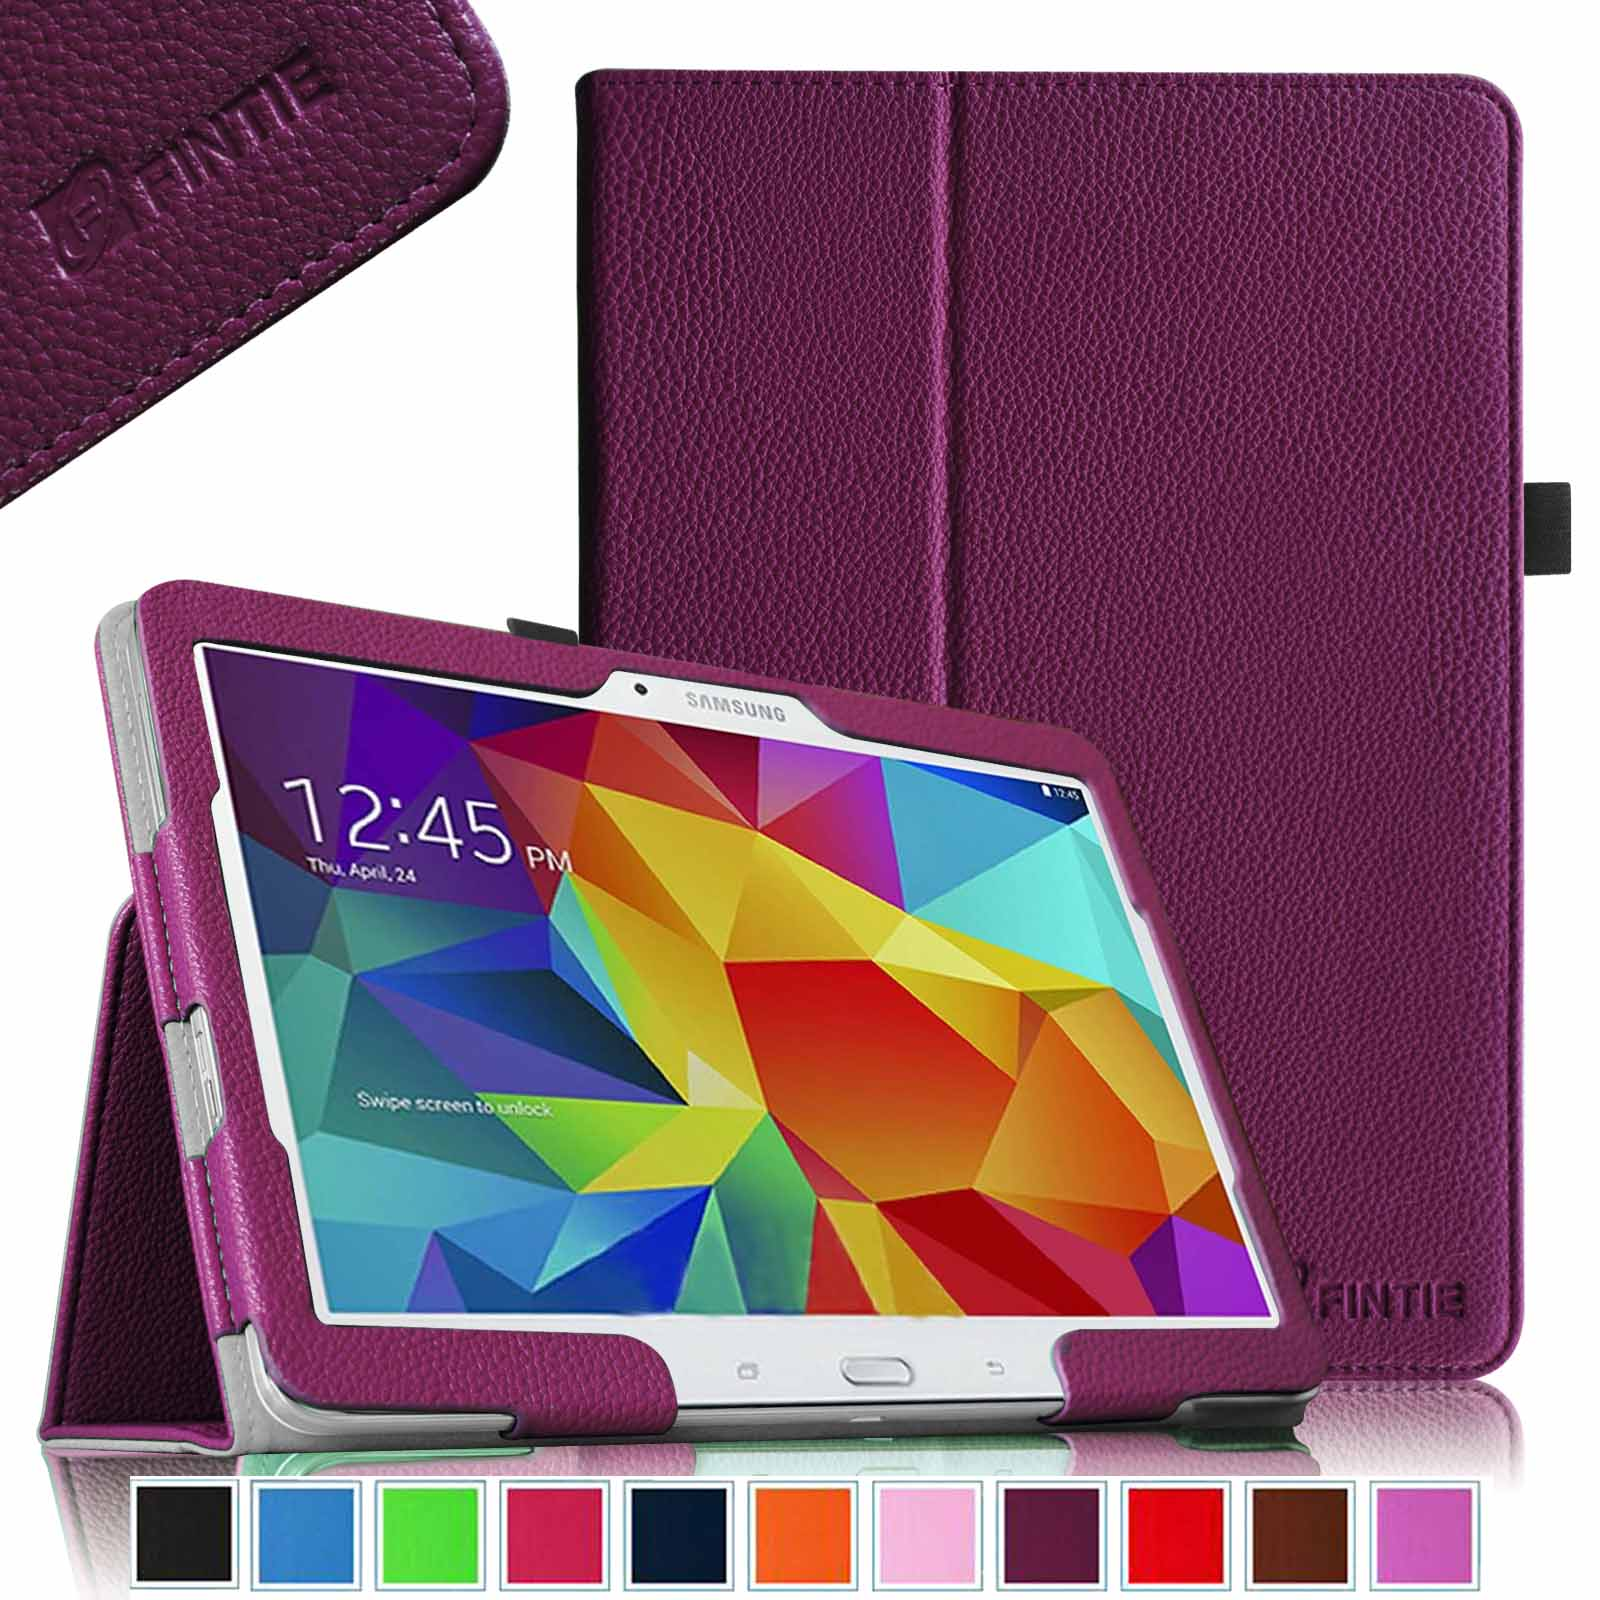 Fintie Samsung Galaxy Tab 4 10.1 / Tab 4 Nook 10.1 Folio Case - Slim Fit PU Leather Cover with Auto Sleep/Wake, Purple